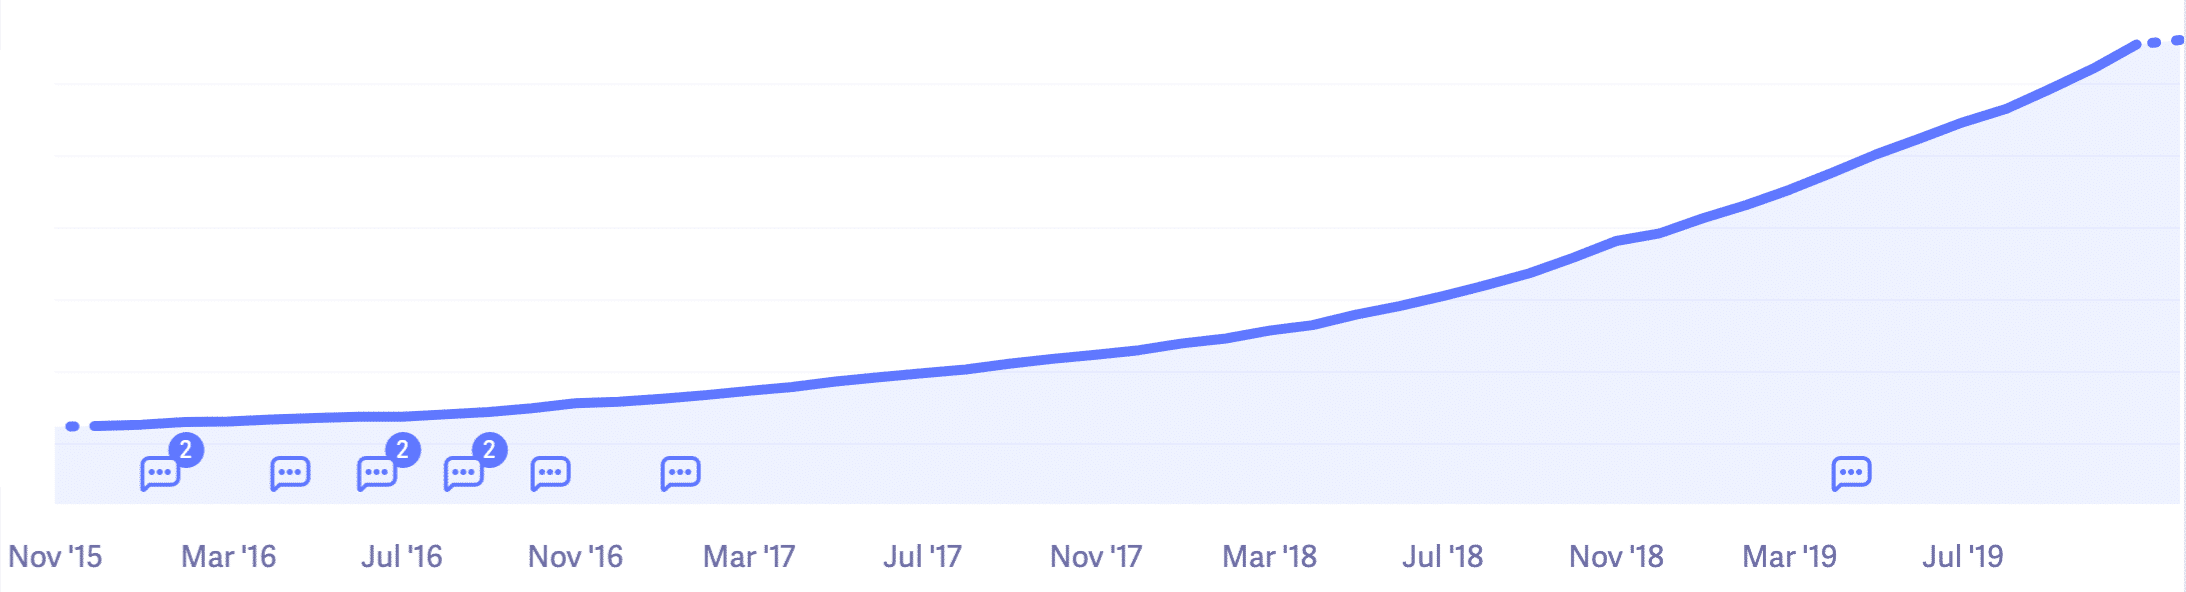 Kinsta annual run rate in 2019